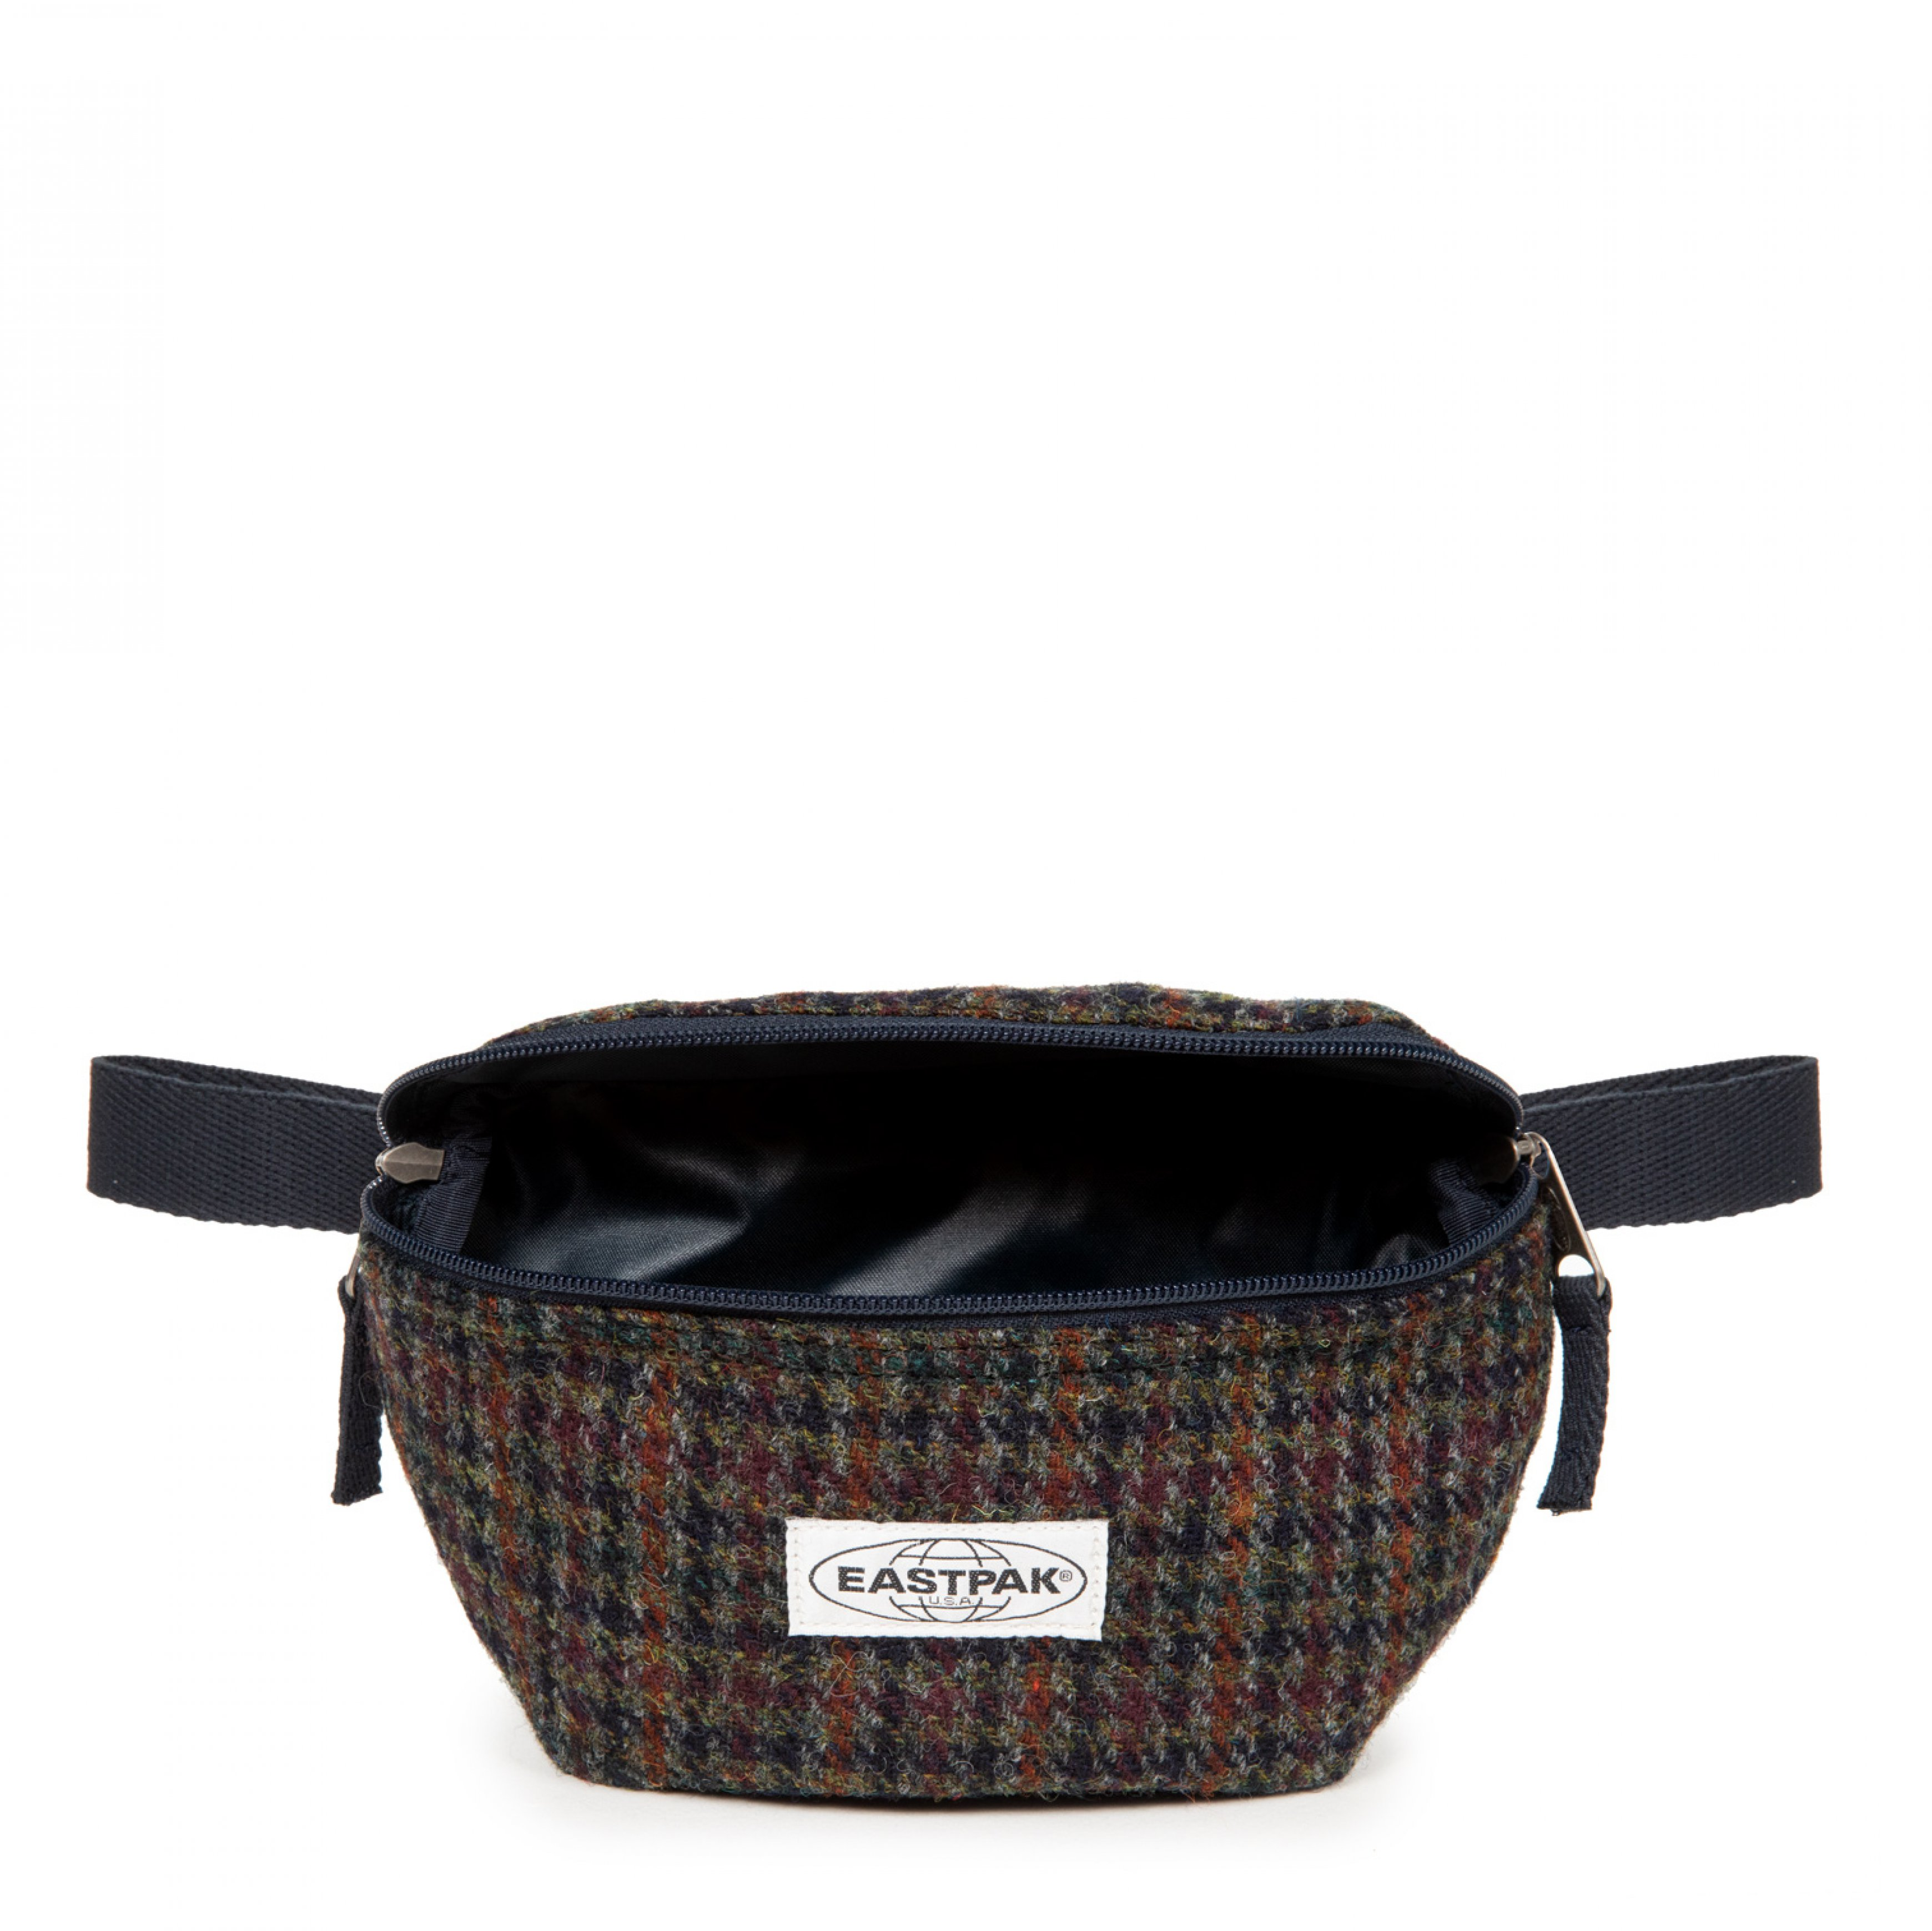 [EASTPAK] IBTWO HARRIS TWEED 웨이스트백 스프링거 EJCBW05 35Z